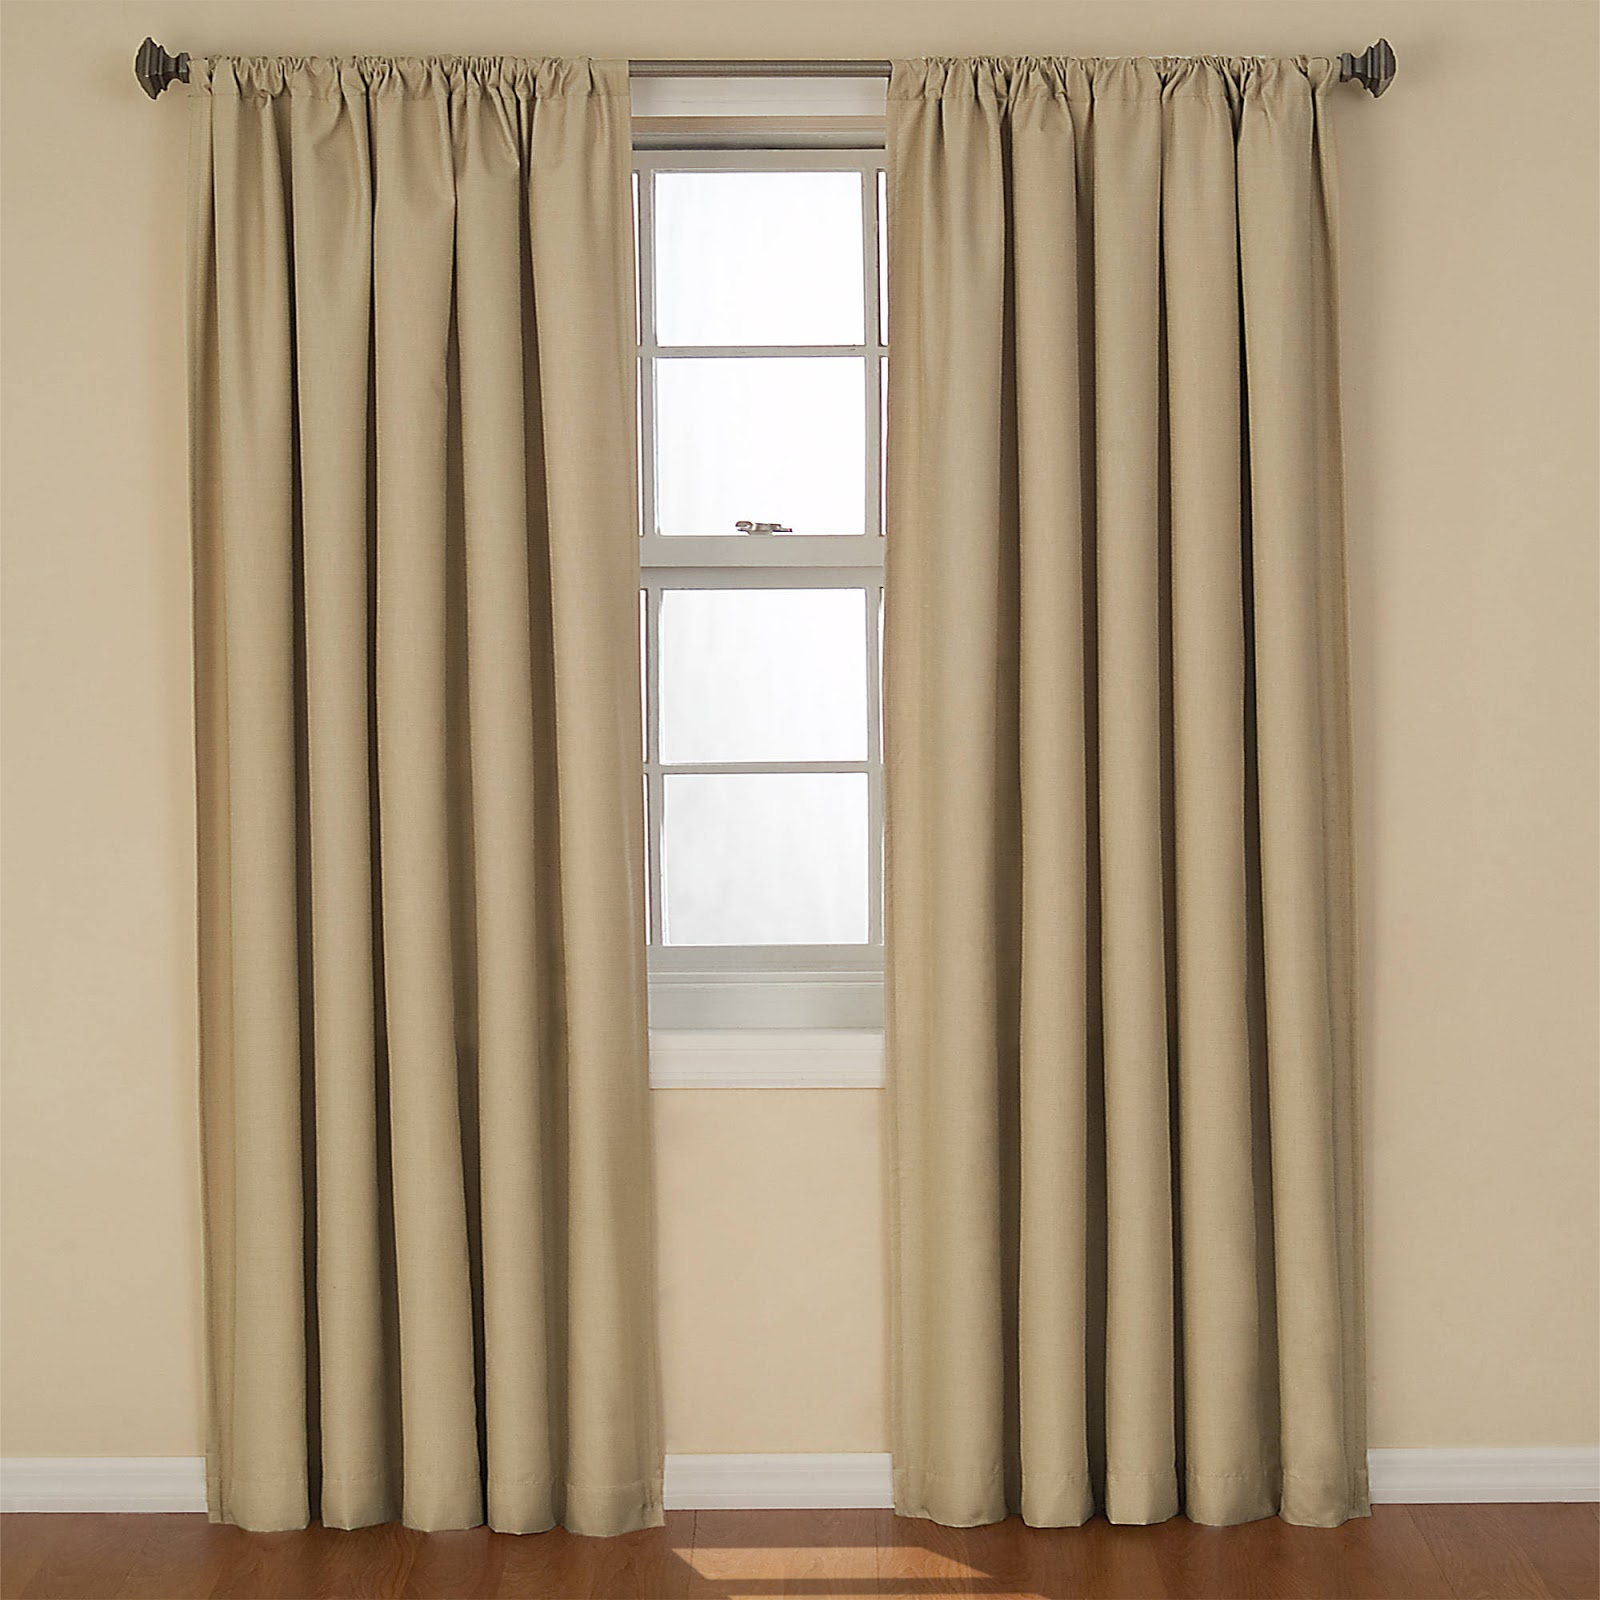 Curtain T Tab Table Tabs Tails